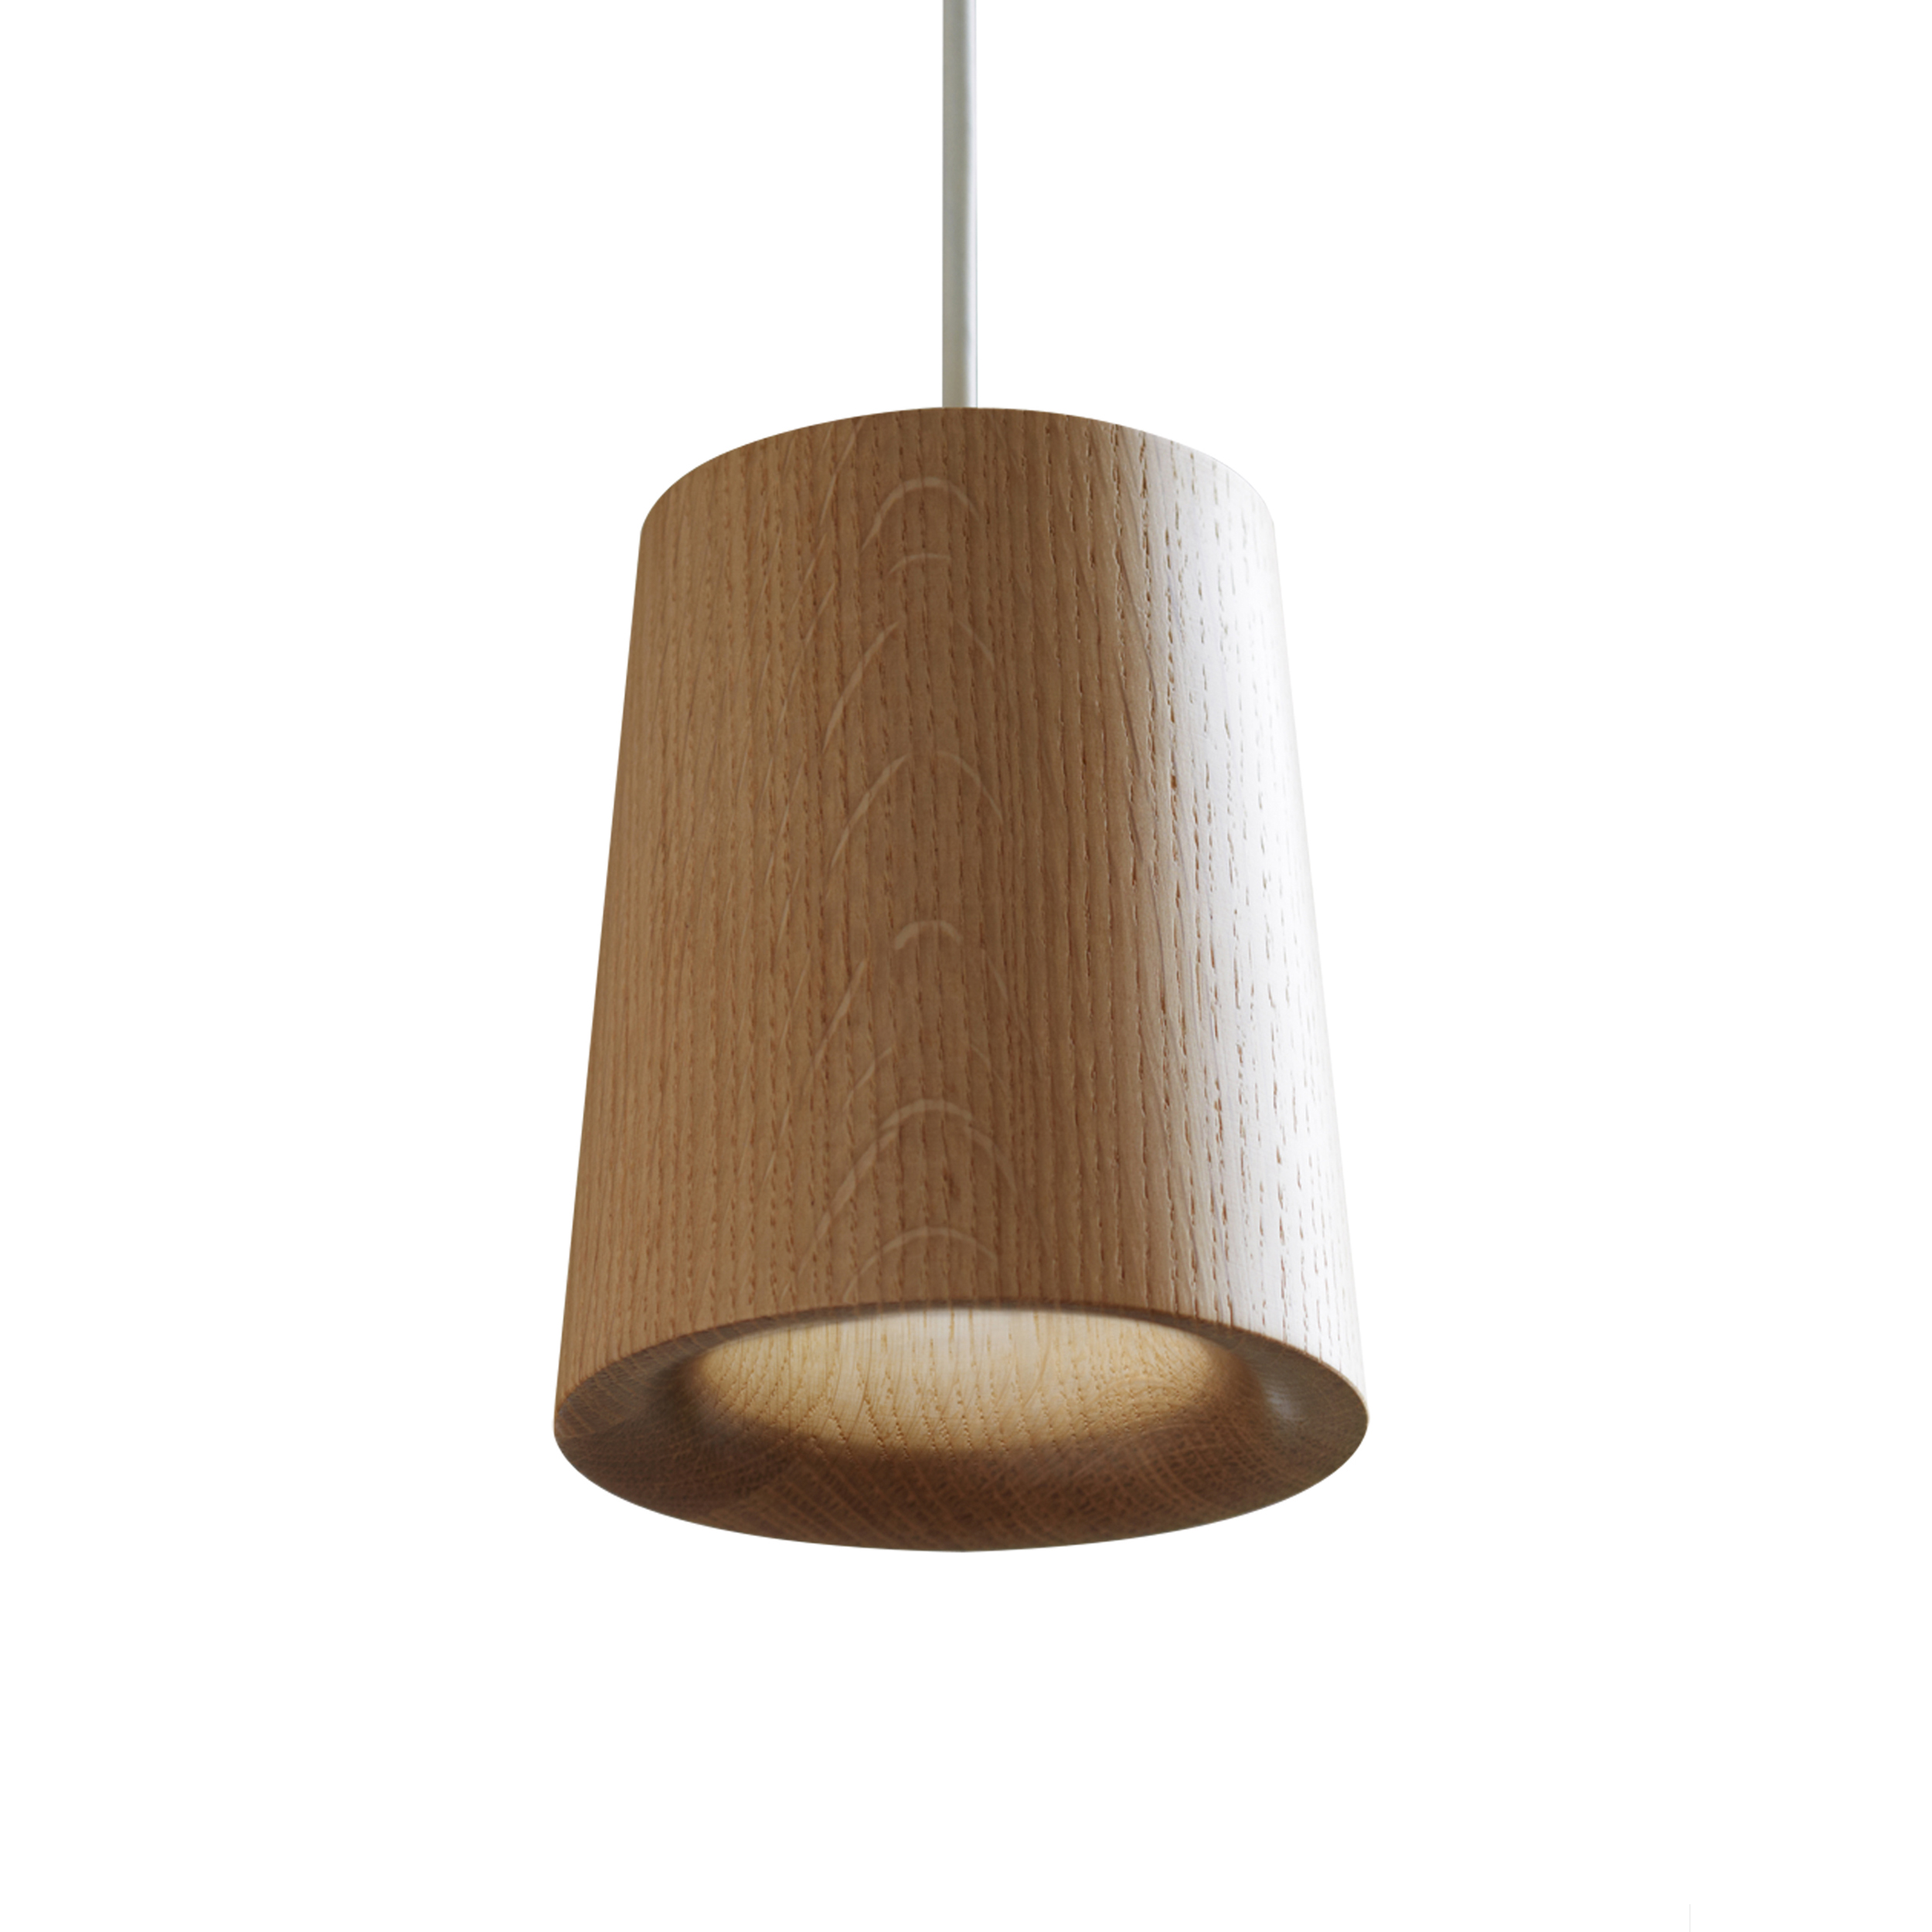 Wooden Lighting Pendants Buy The Solid Wooden Cone Pendant Light All Square Lighting